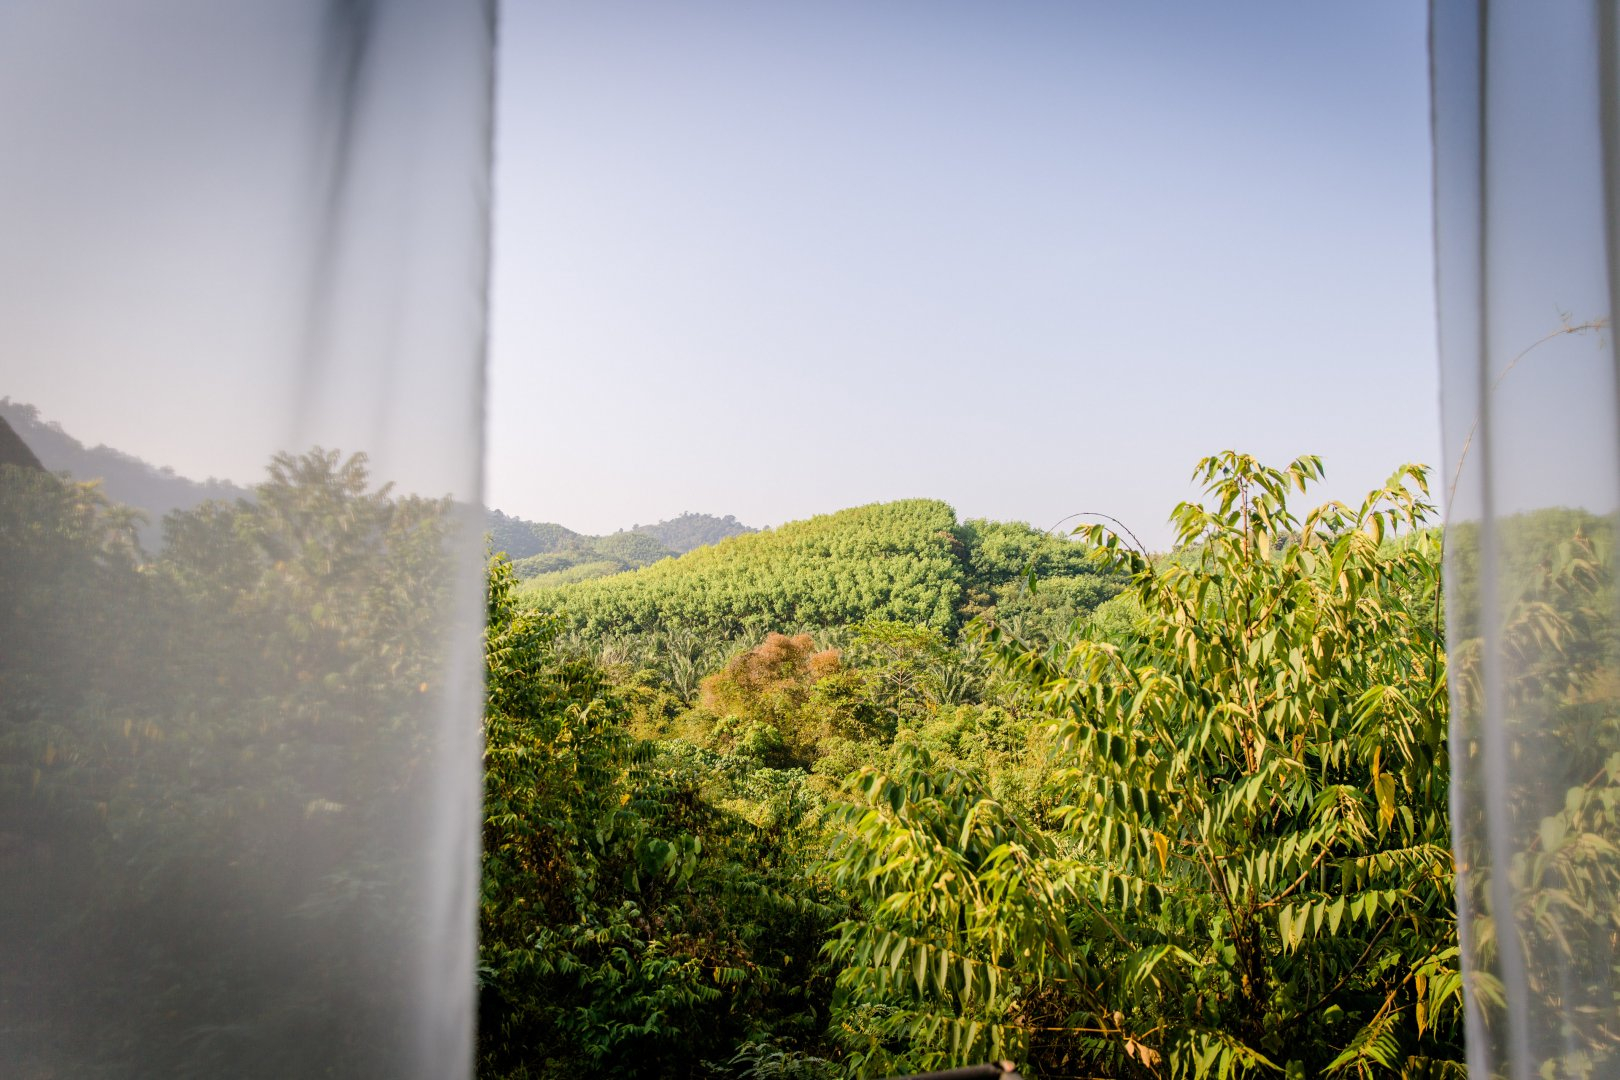 Vegetation Sky Green Natural environment Leaf Tree Window Forest Sunlight Mountain Hill station Plant Landscape Hill Cloud House Rainforest Glass Vacation Shrub